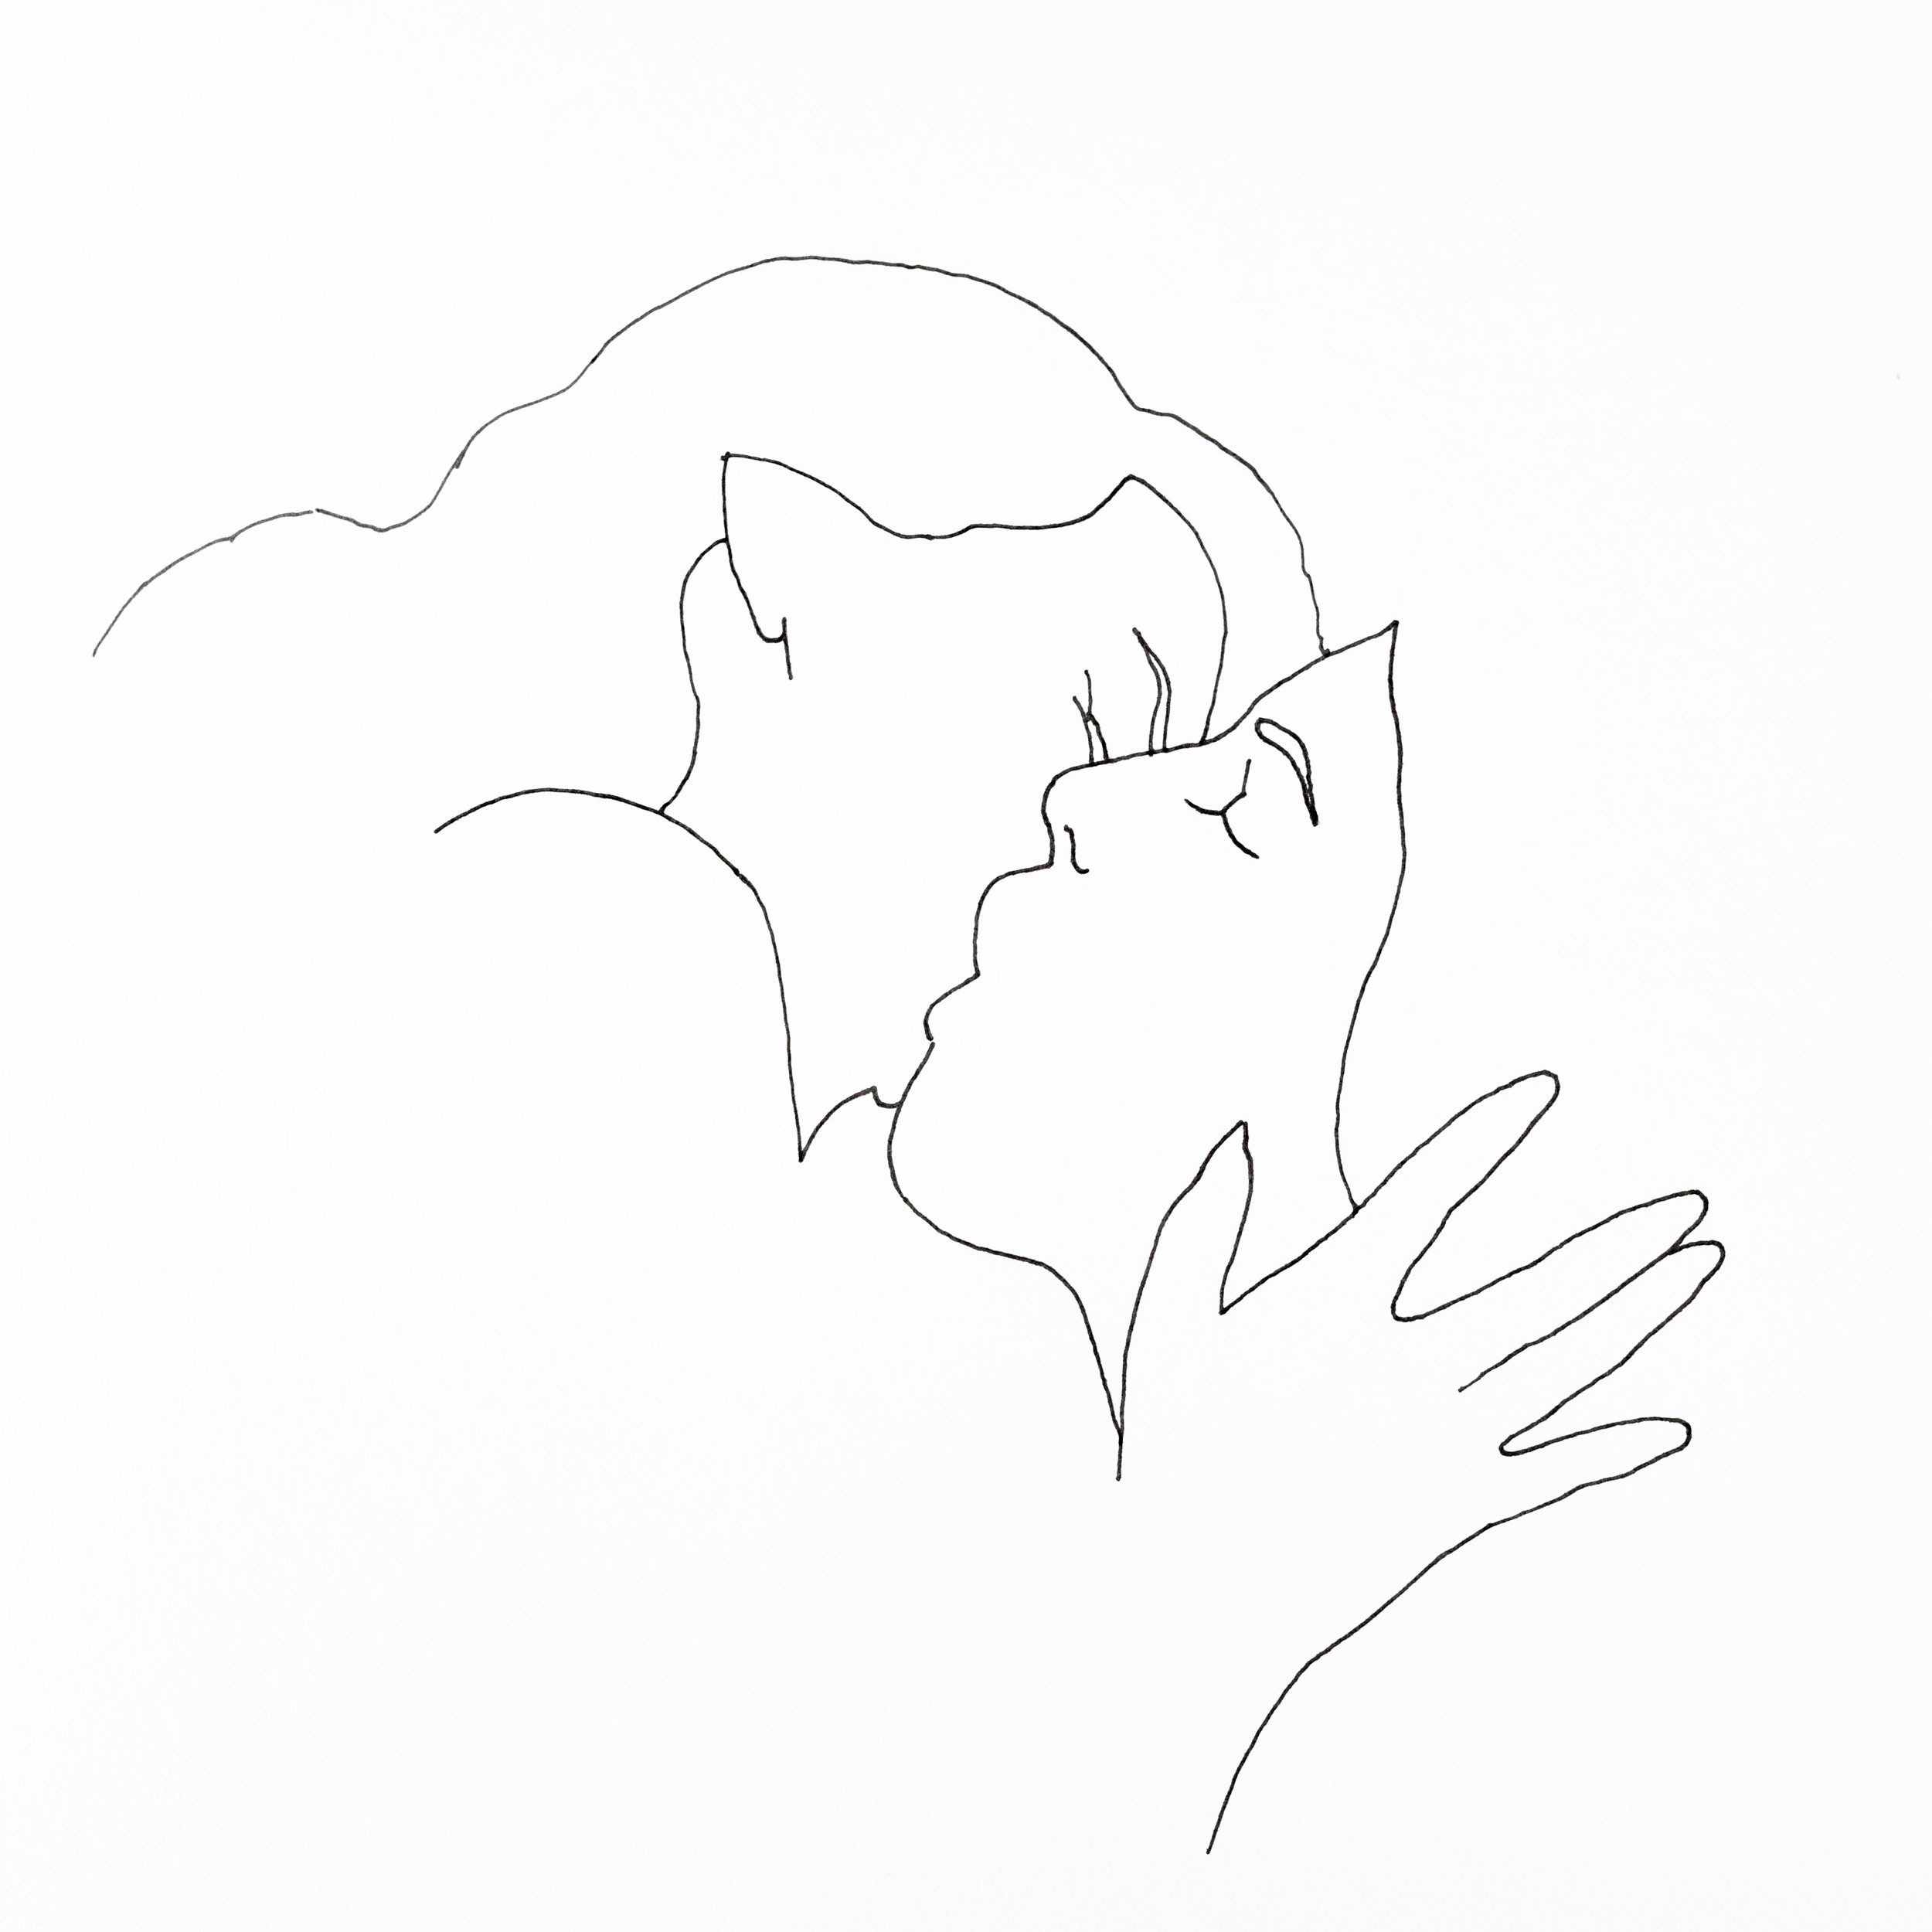 Minimal line drawing of two women kissing using pen and ink on paper.